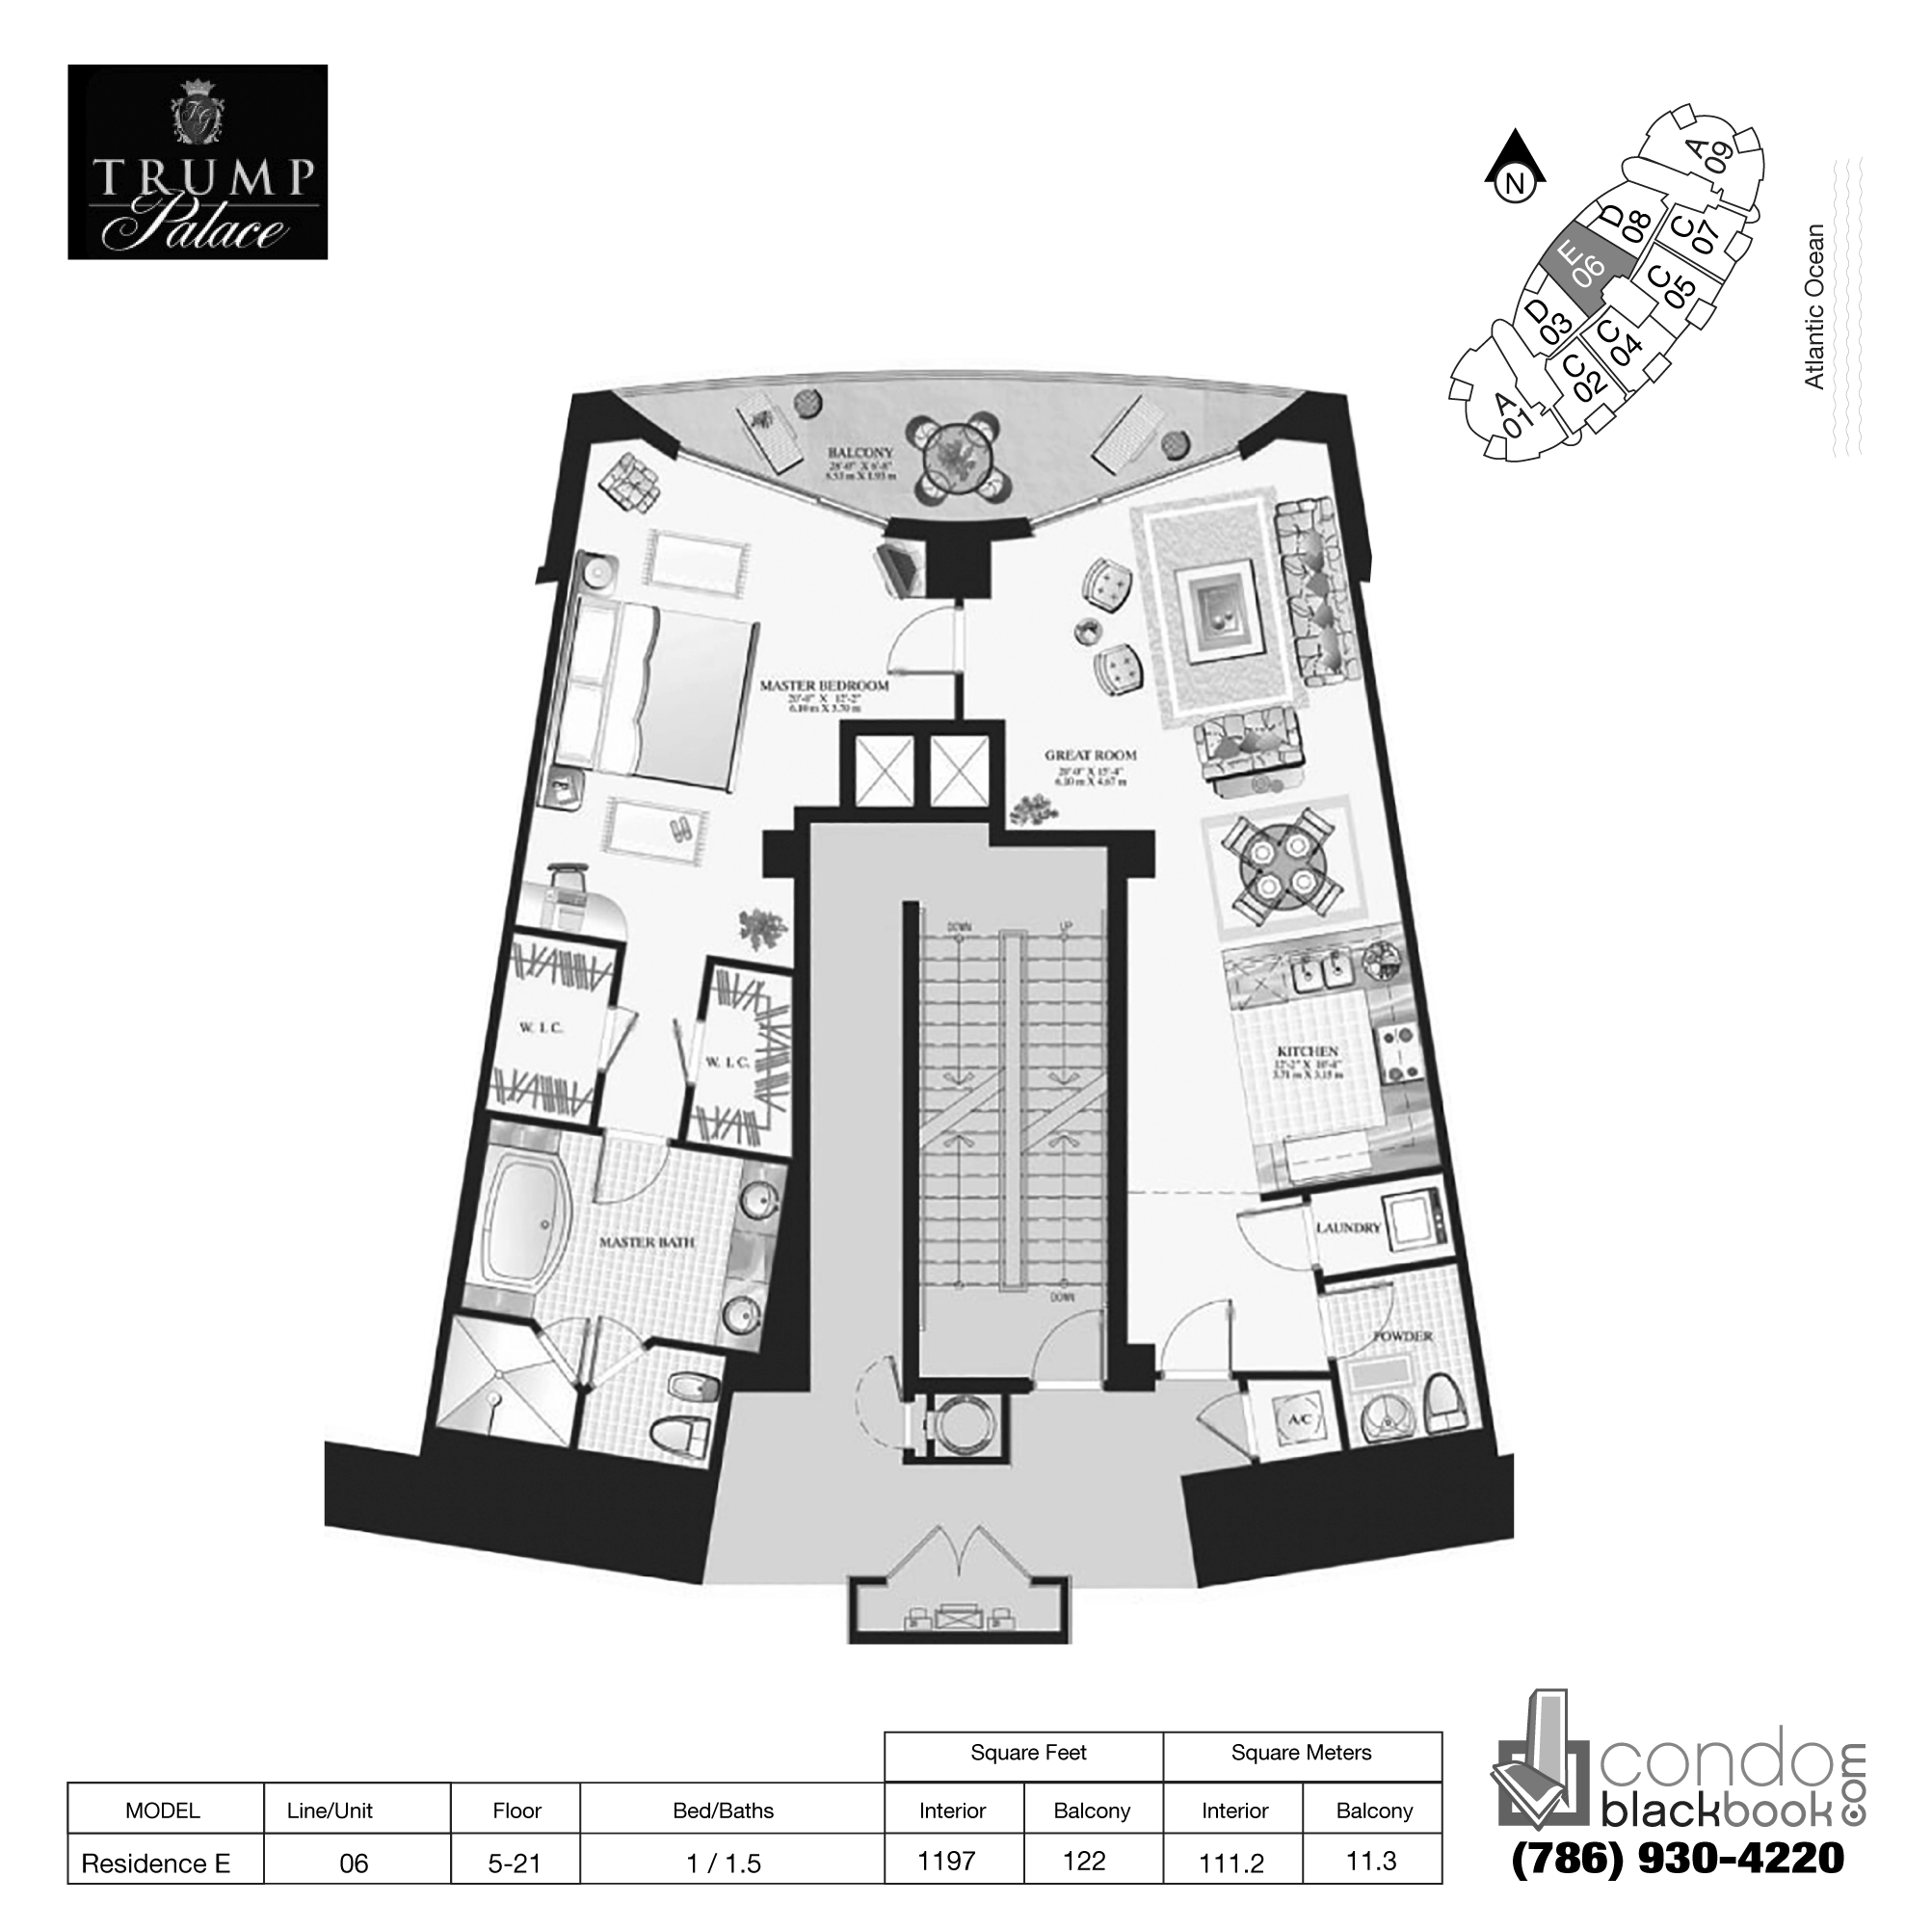 Floor plan for Trump Palace Sunny Isles Beach, model Res. E, line 06, 1 / 1.5 bedrooms, 1197 sq ft